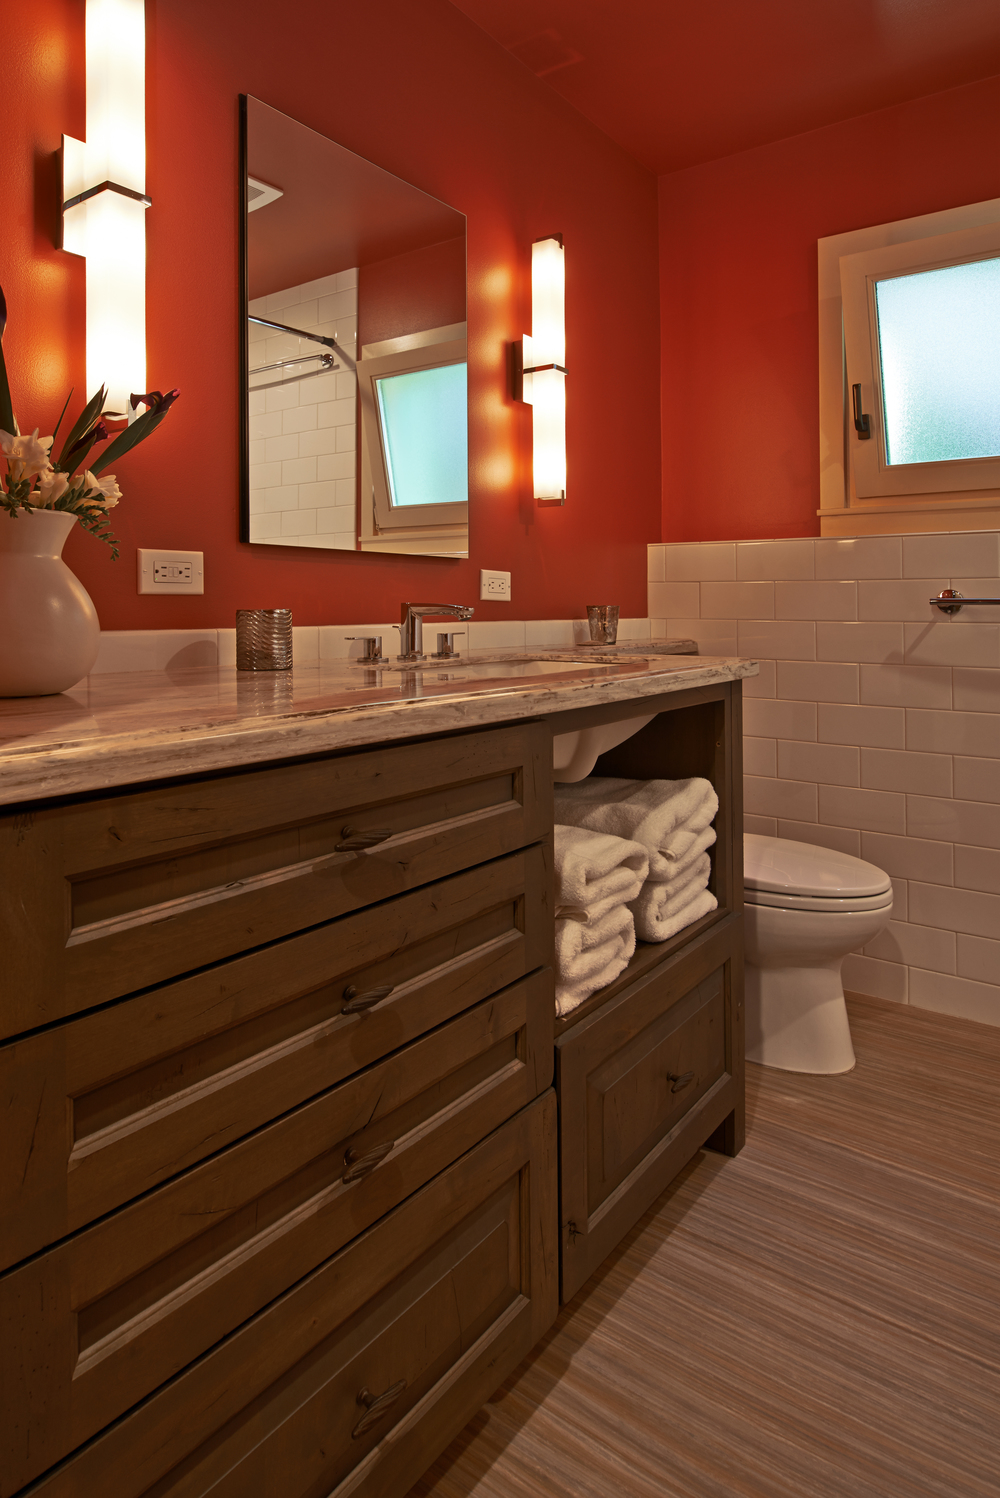 CRD Design Build - ADU bath.jpg